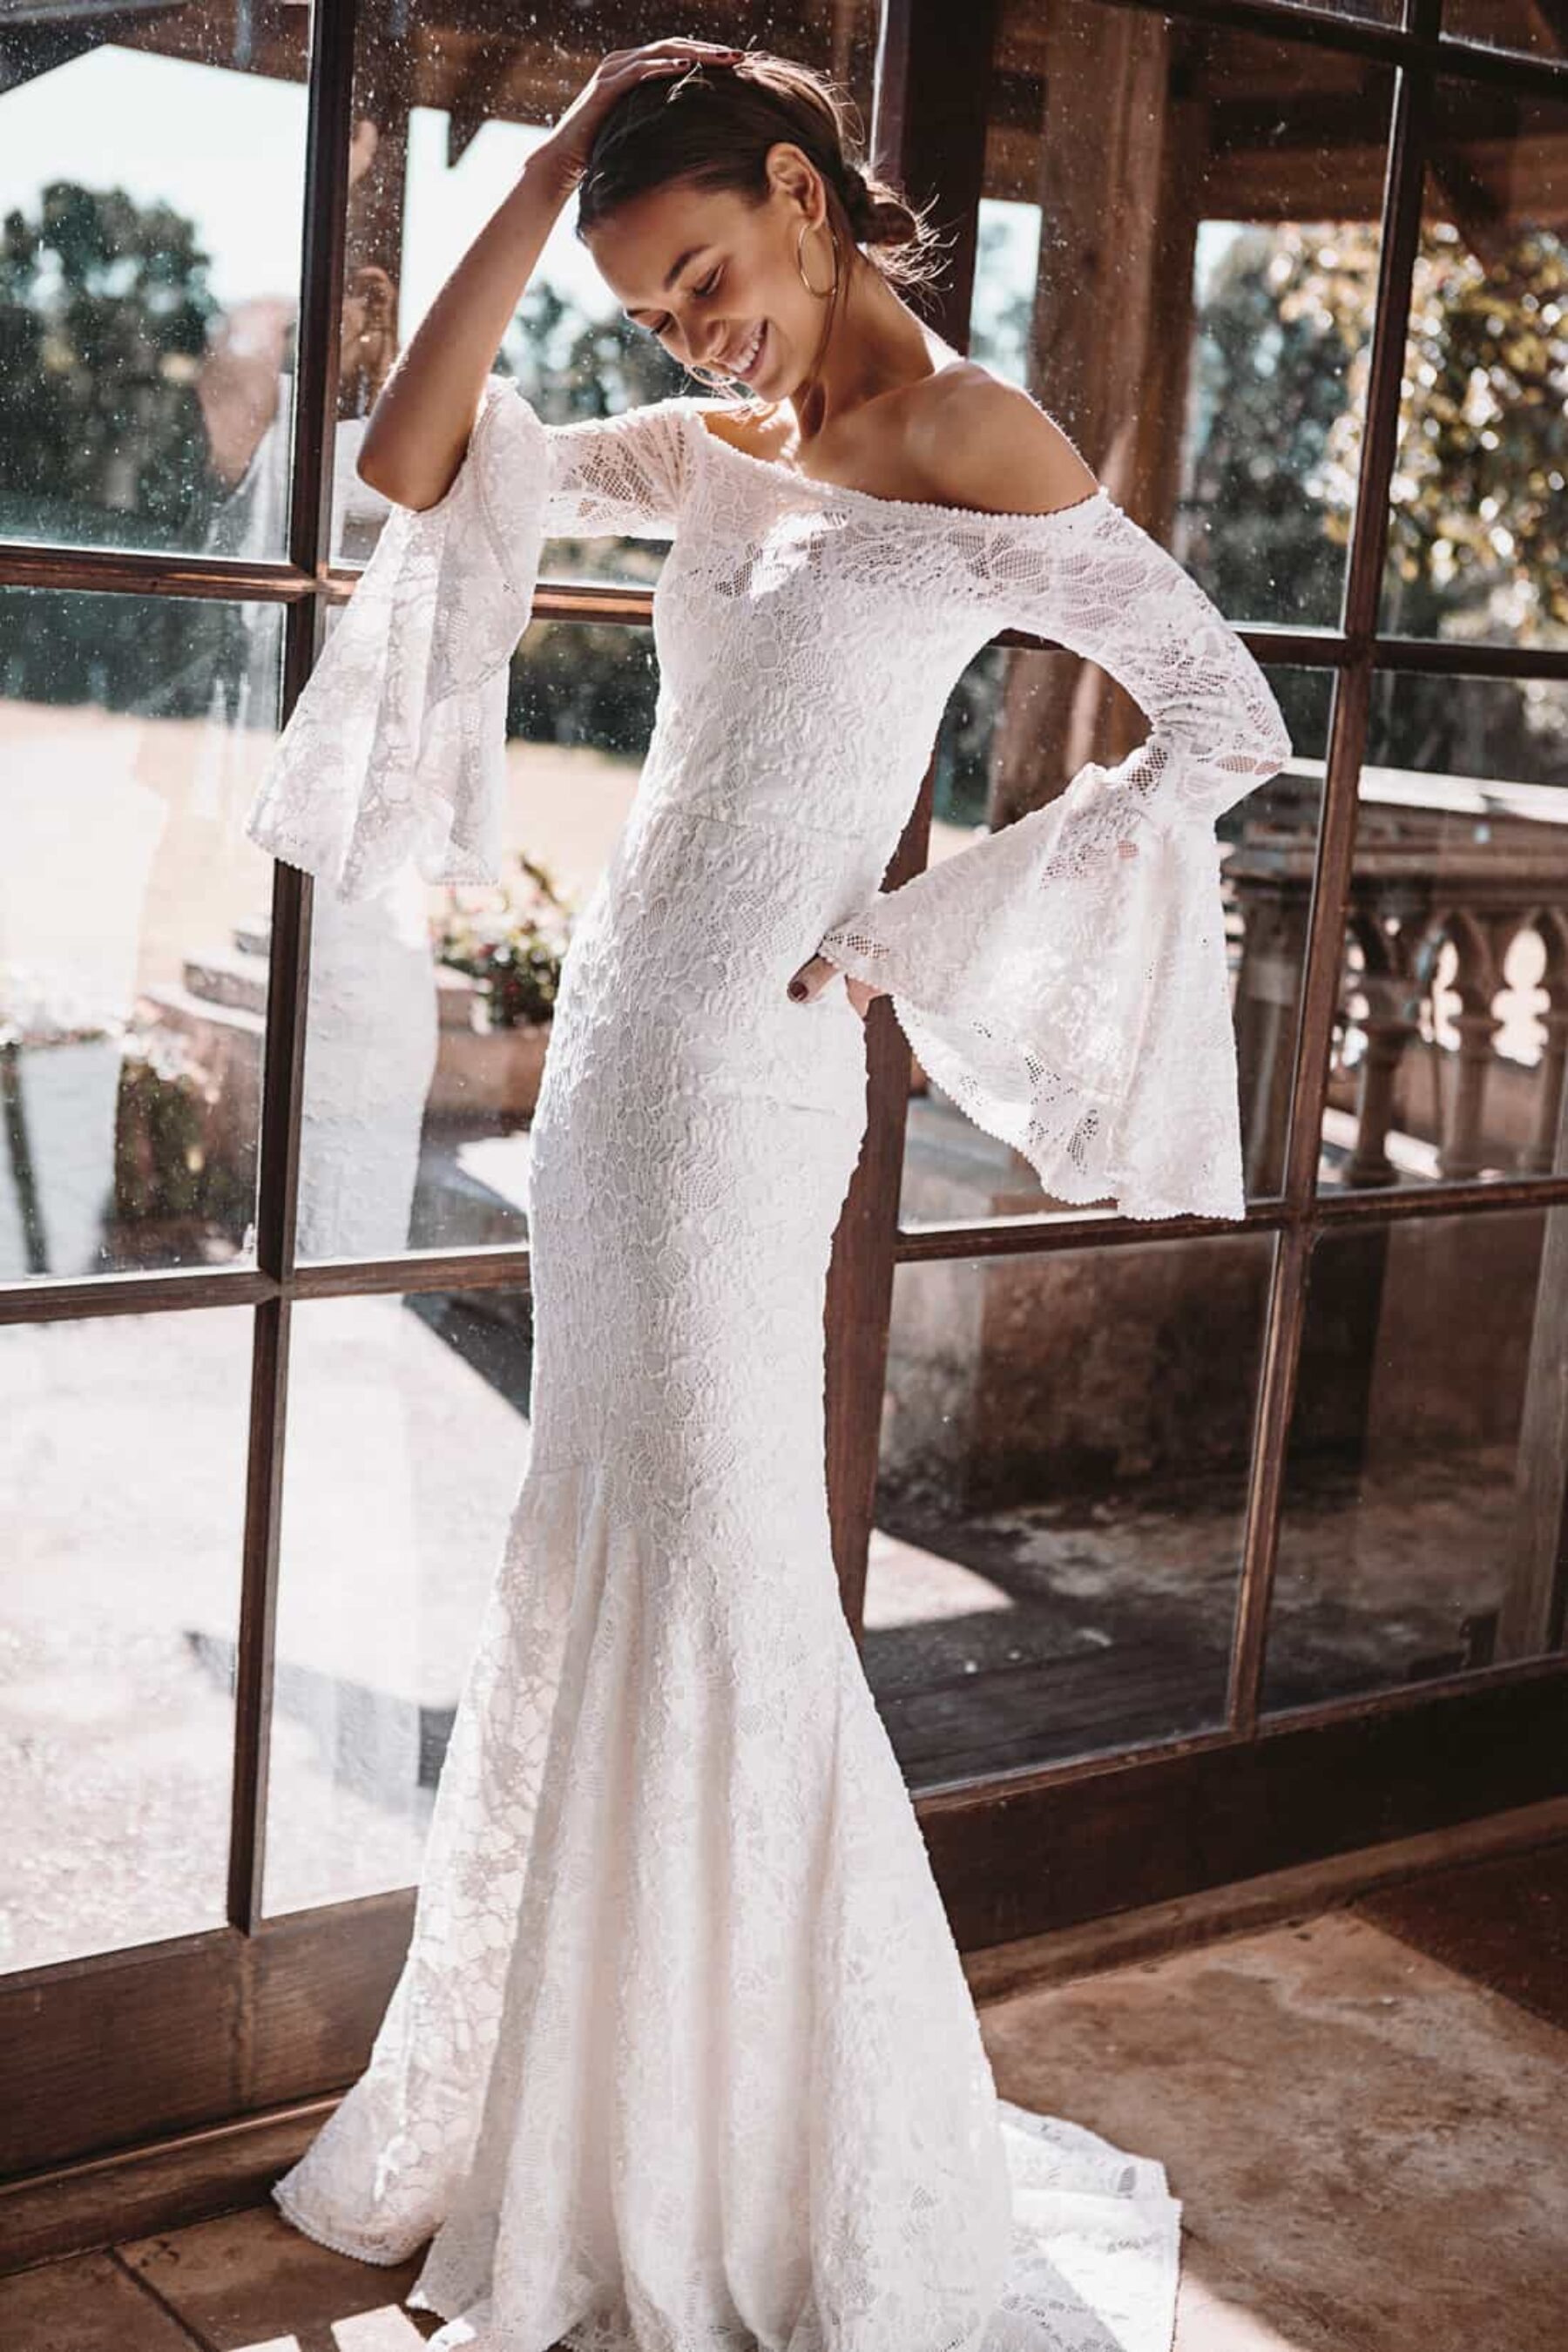 bell sleeve wedding dress by Grace Loves Lace